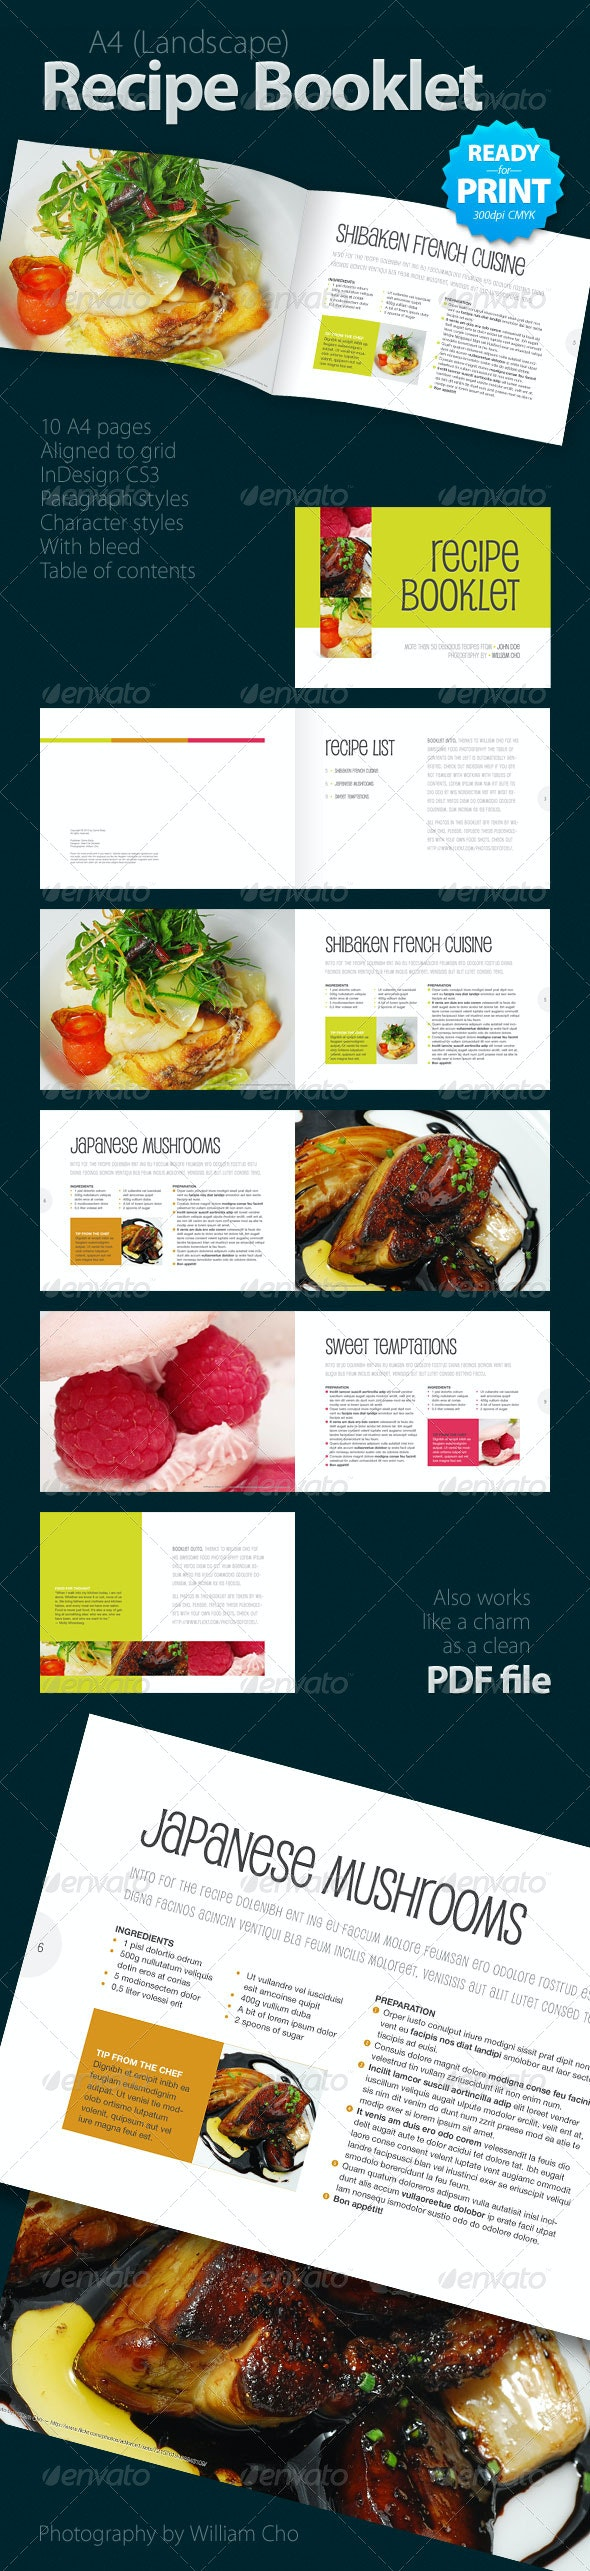 Recipe Booklet (10 pages) - Informational Brochures